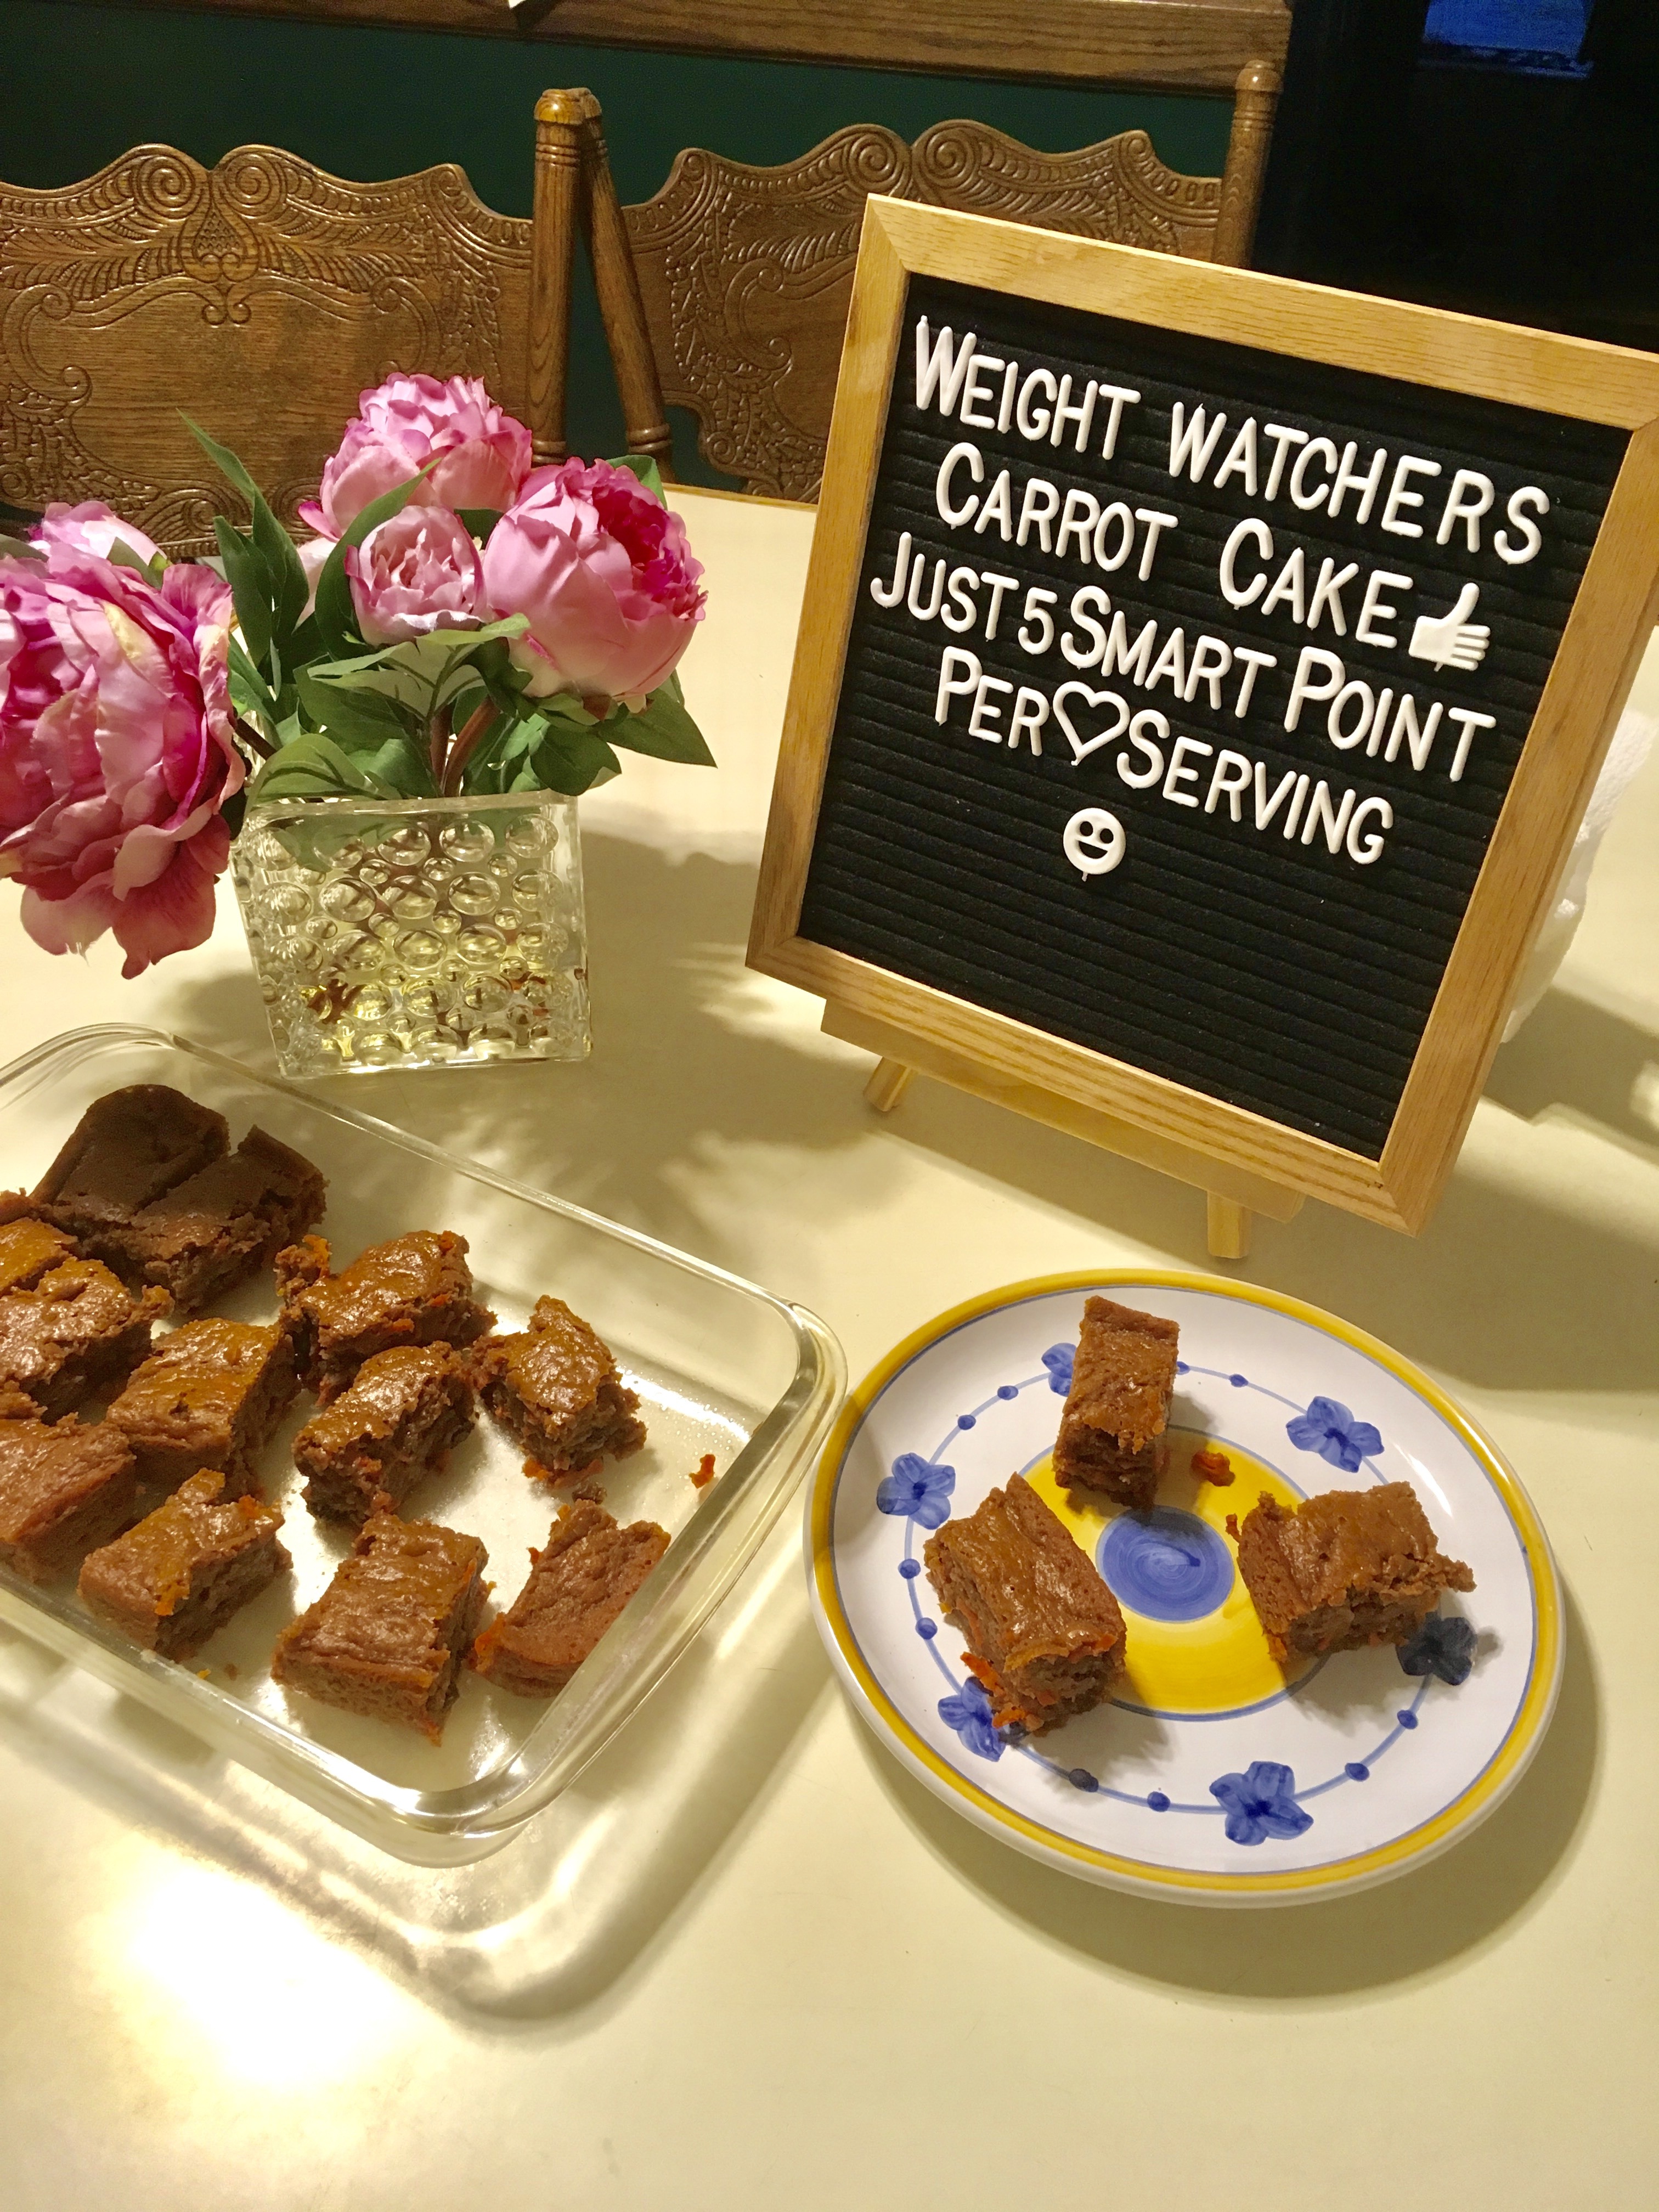 Semi-Homemade Weight Watchers Carrot Cake is a great recipe idea that makes a cake mix easy to fit into your daily SmartPoints on the WW FreeStyle Plan!